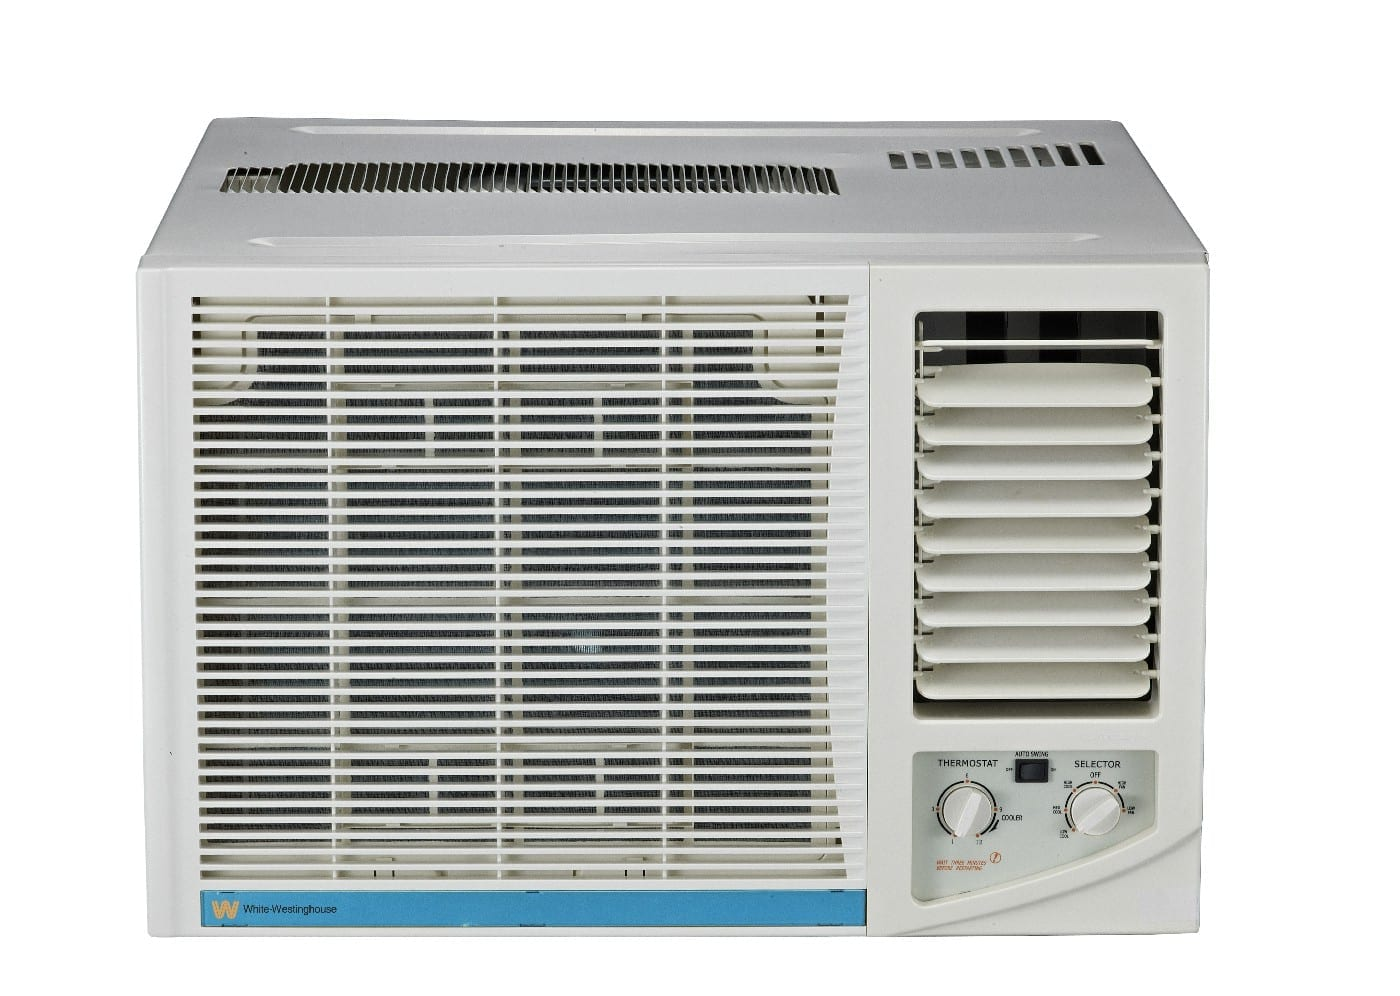 Ww House Window A/C, Capacity: 20380 Btu ( 1.7 Ton), 4 Star Ac. Eer : 9.83 Made China